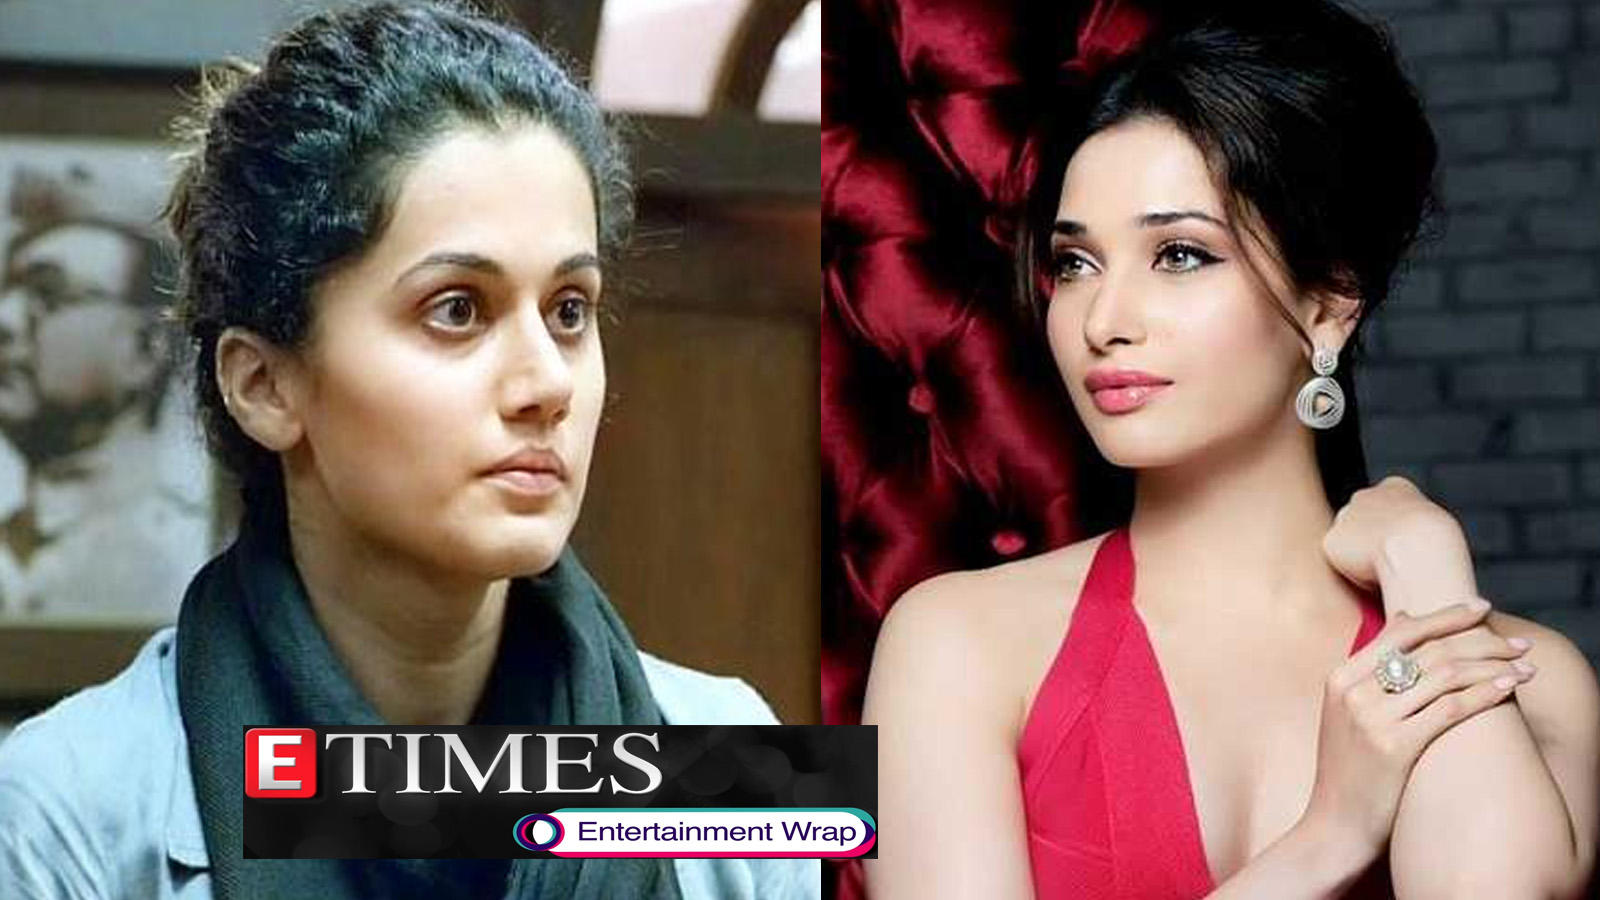 when-taapsee-pannu-lashed-out-at-fan-tamannaah-bhatia-buys-lavish-apartment-for-hefty-amount-in-mumbai-and-more